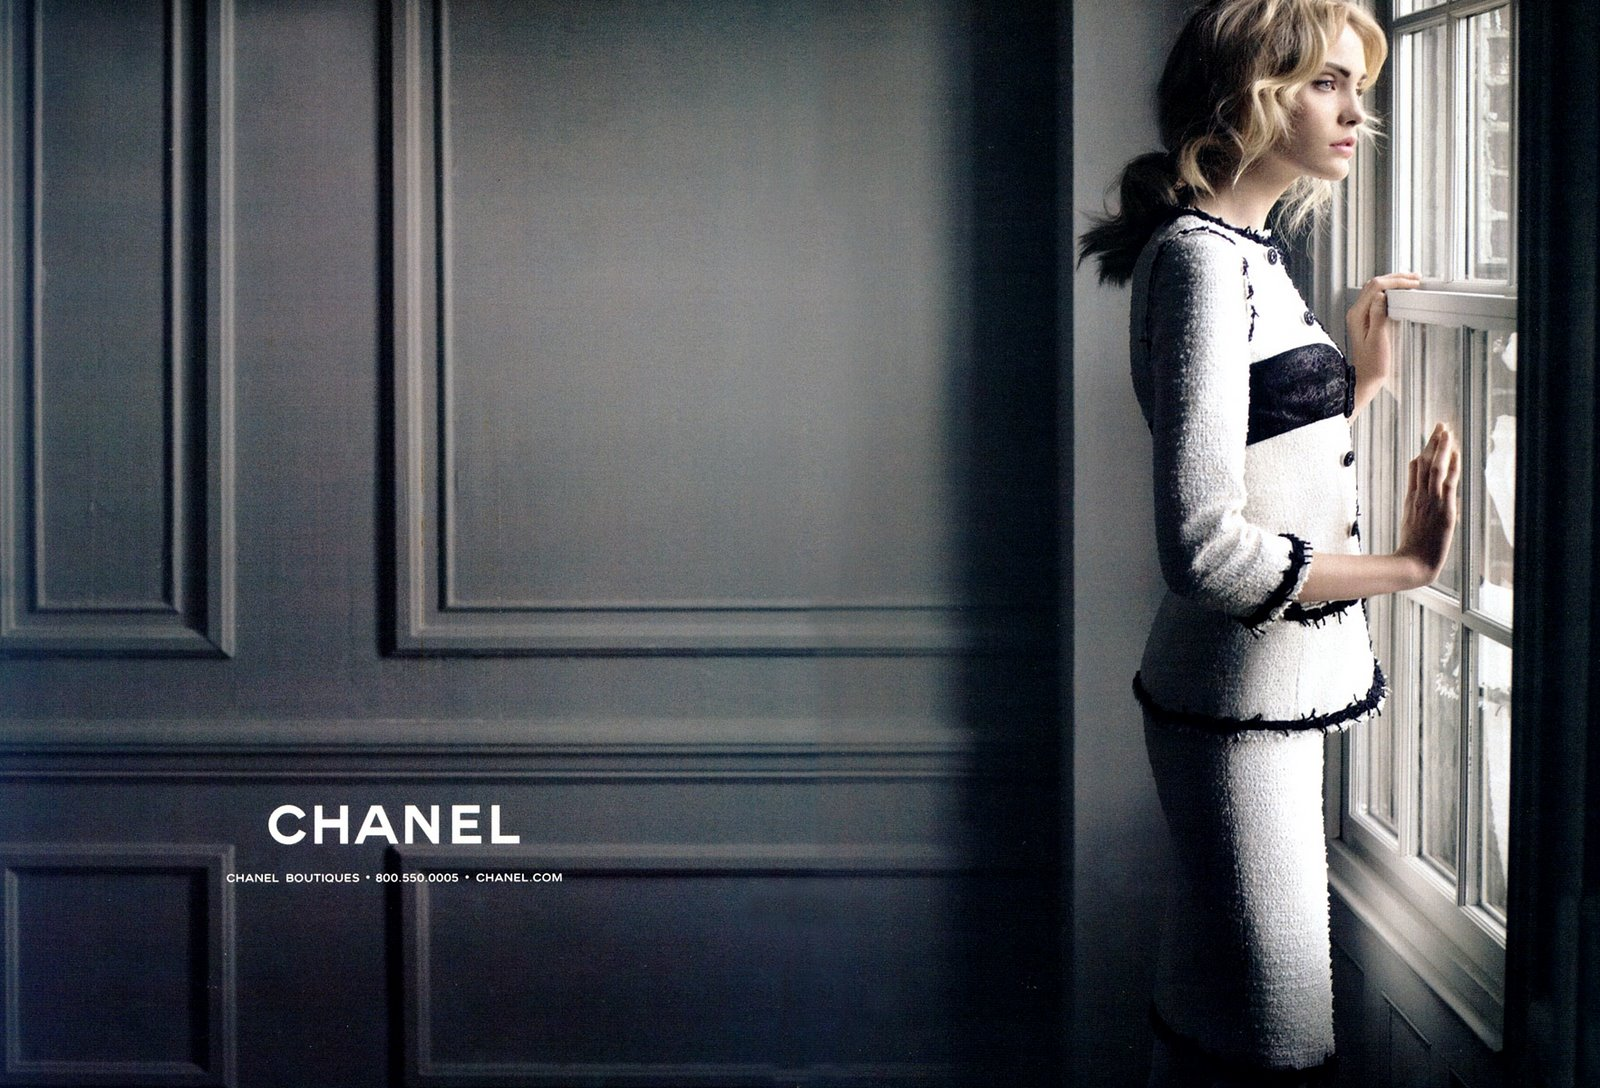 Fashion: Top 10 Luxurious Brands of 2016 chanel heidi mount  TOP 10 LUXURIOUS FASHION BRANDS OF 2016 chanel heidi mount